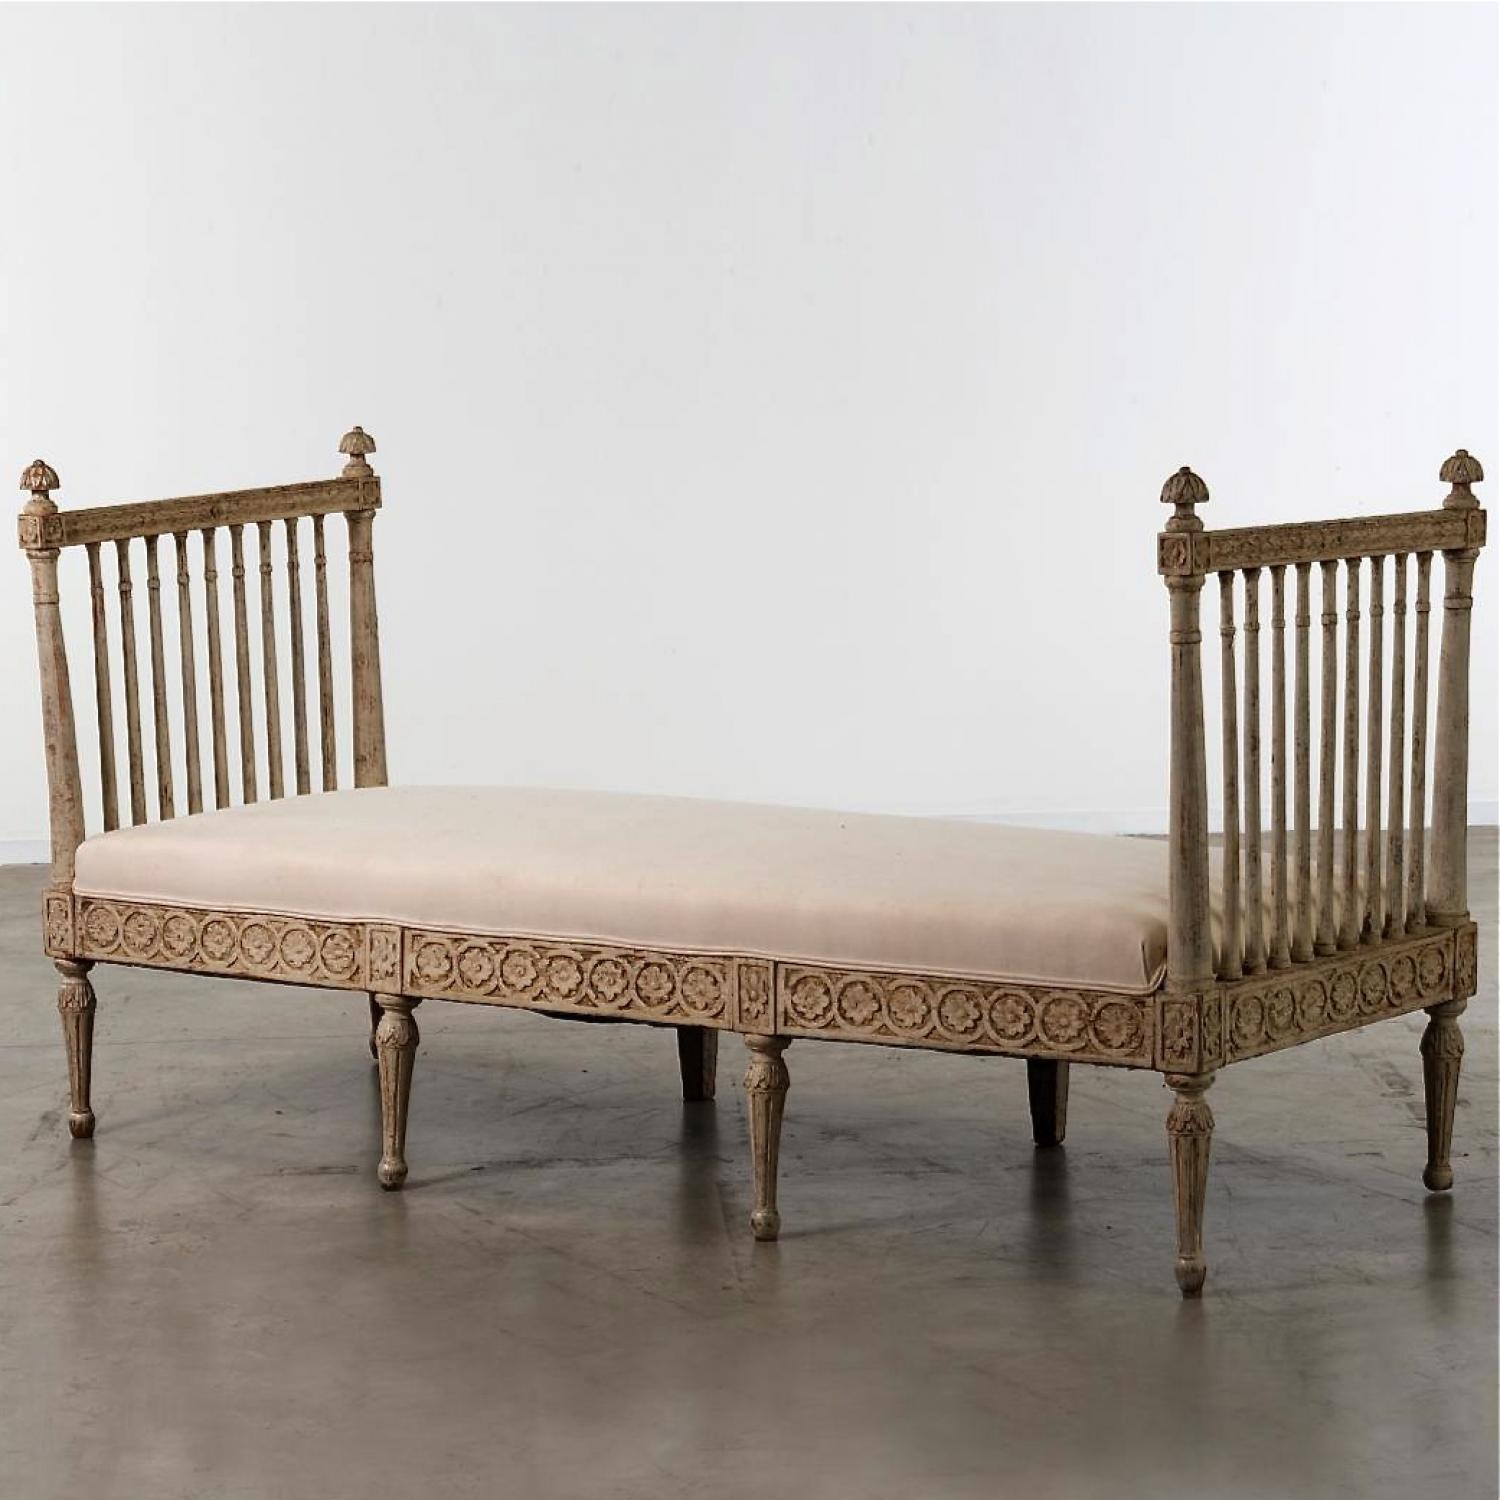 RICHLY CARVED SWEDISH GUSTAVIAN DAYBED